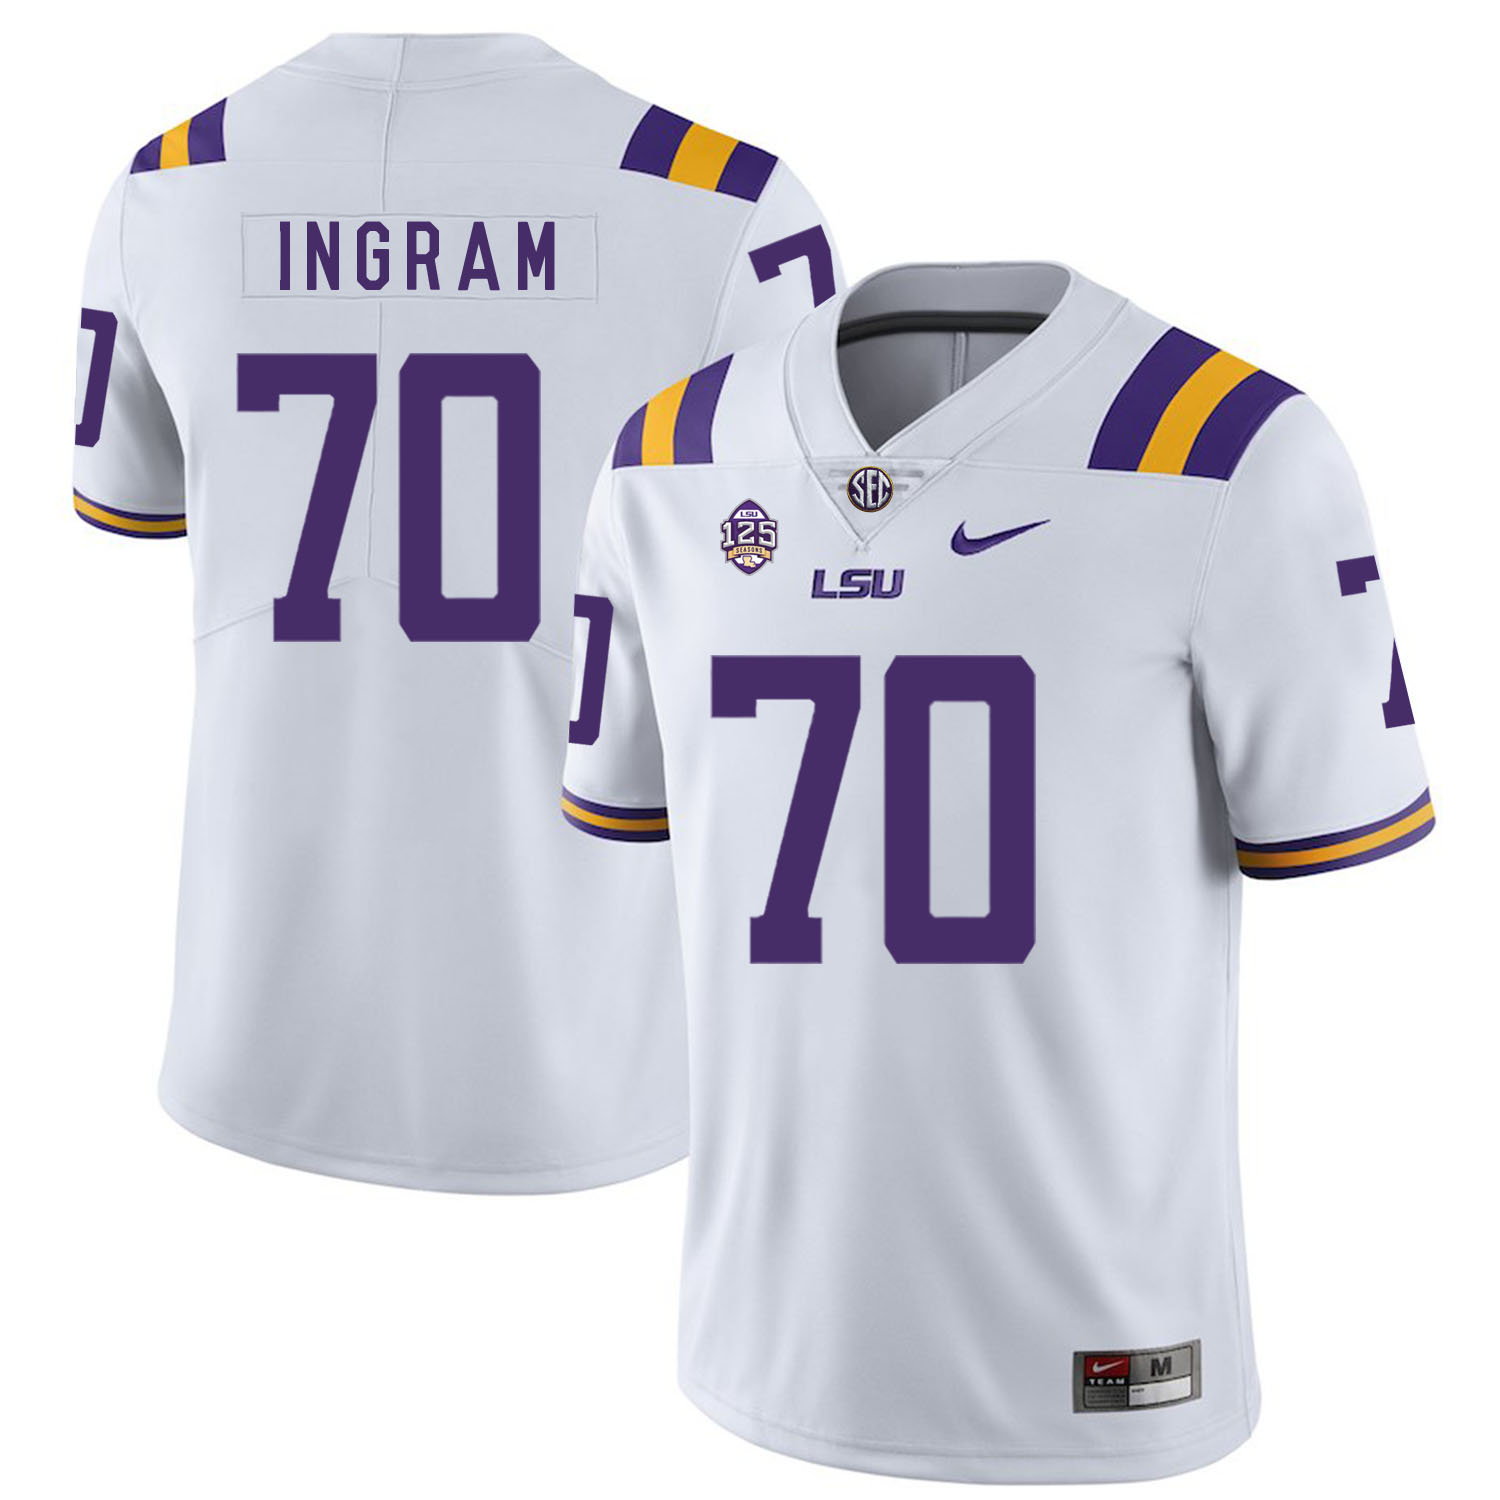 LSU Tigers 70 Edward Ingram White Nike College Football Jersey